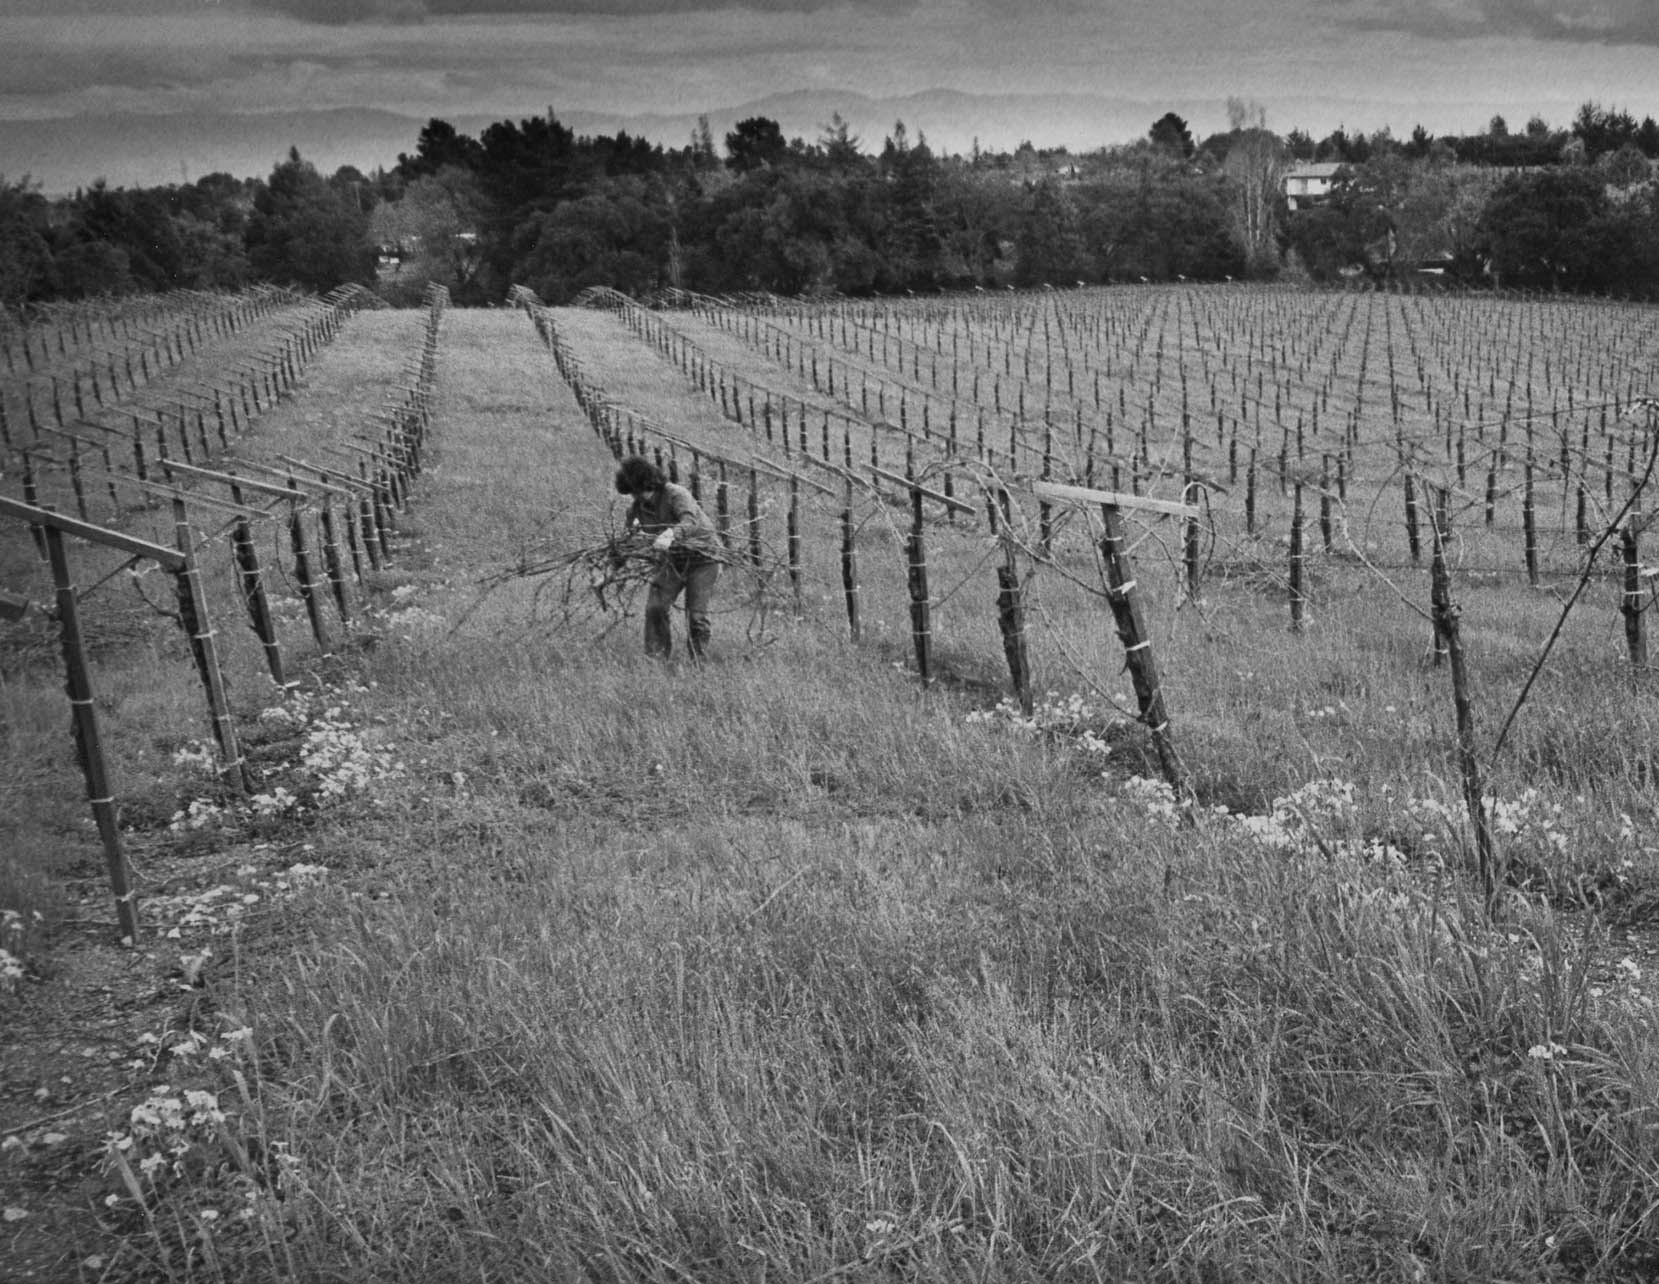 Image of Kathryn Kennedy tending to Vineyard